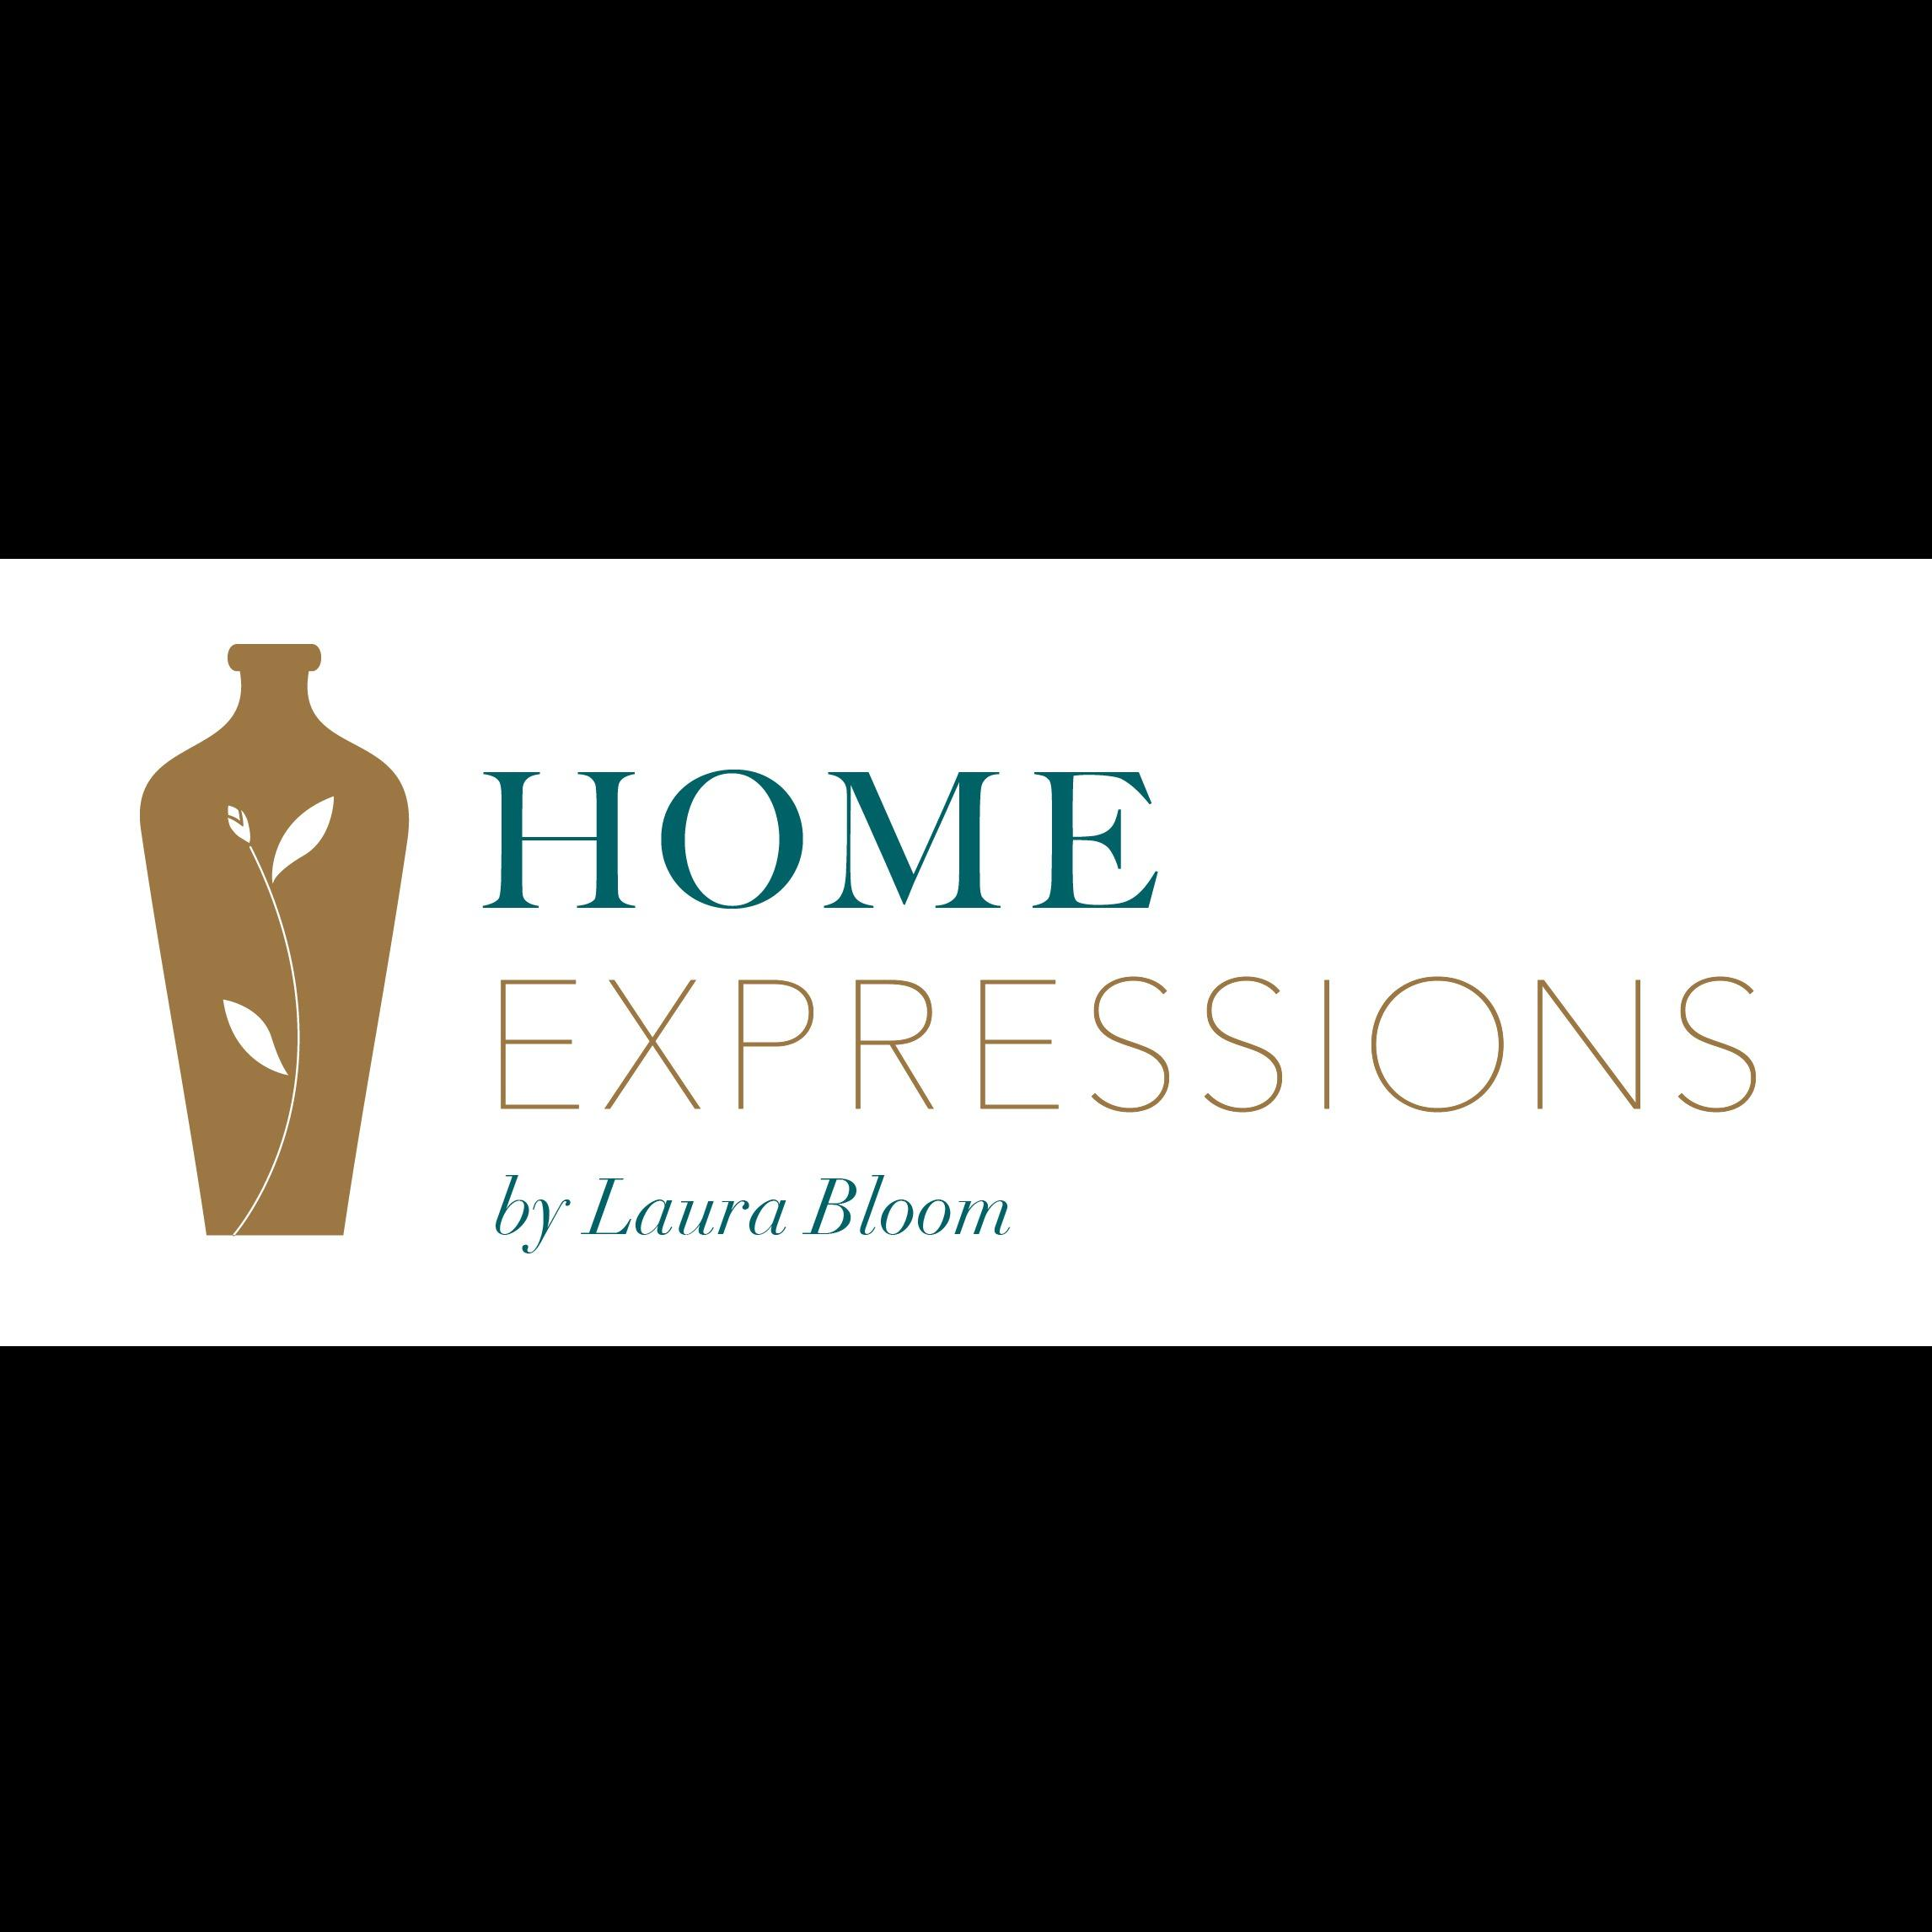 Home Expressions Interiors by Laura Bloom